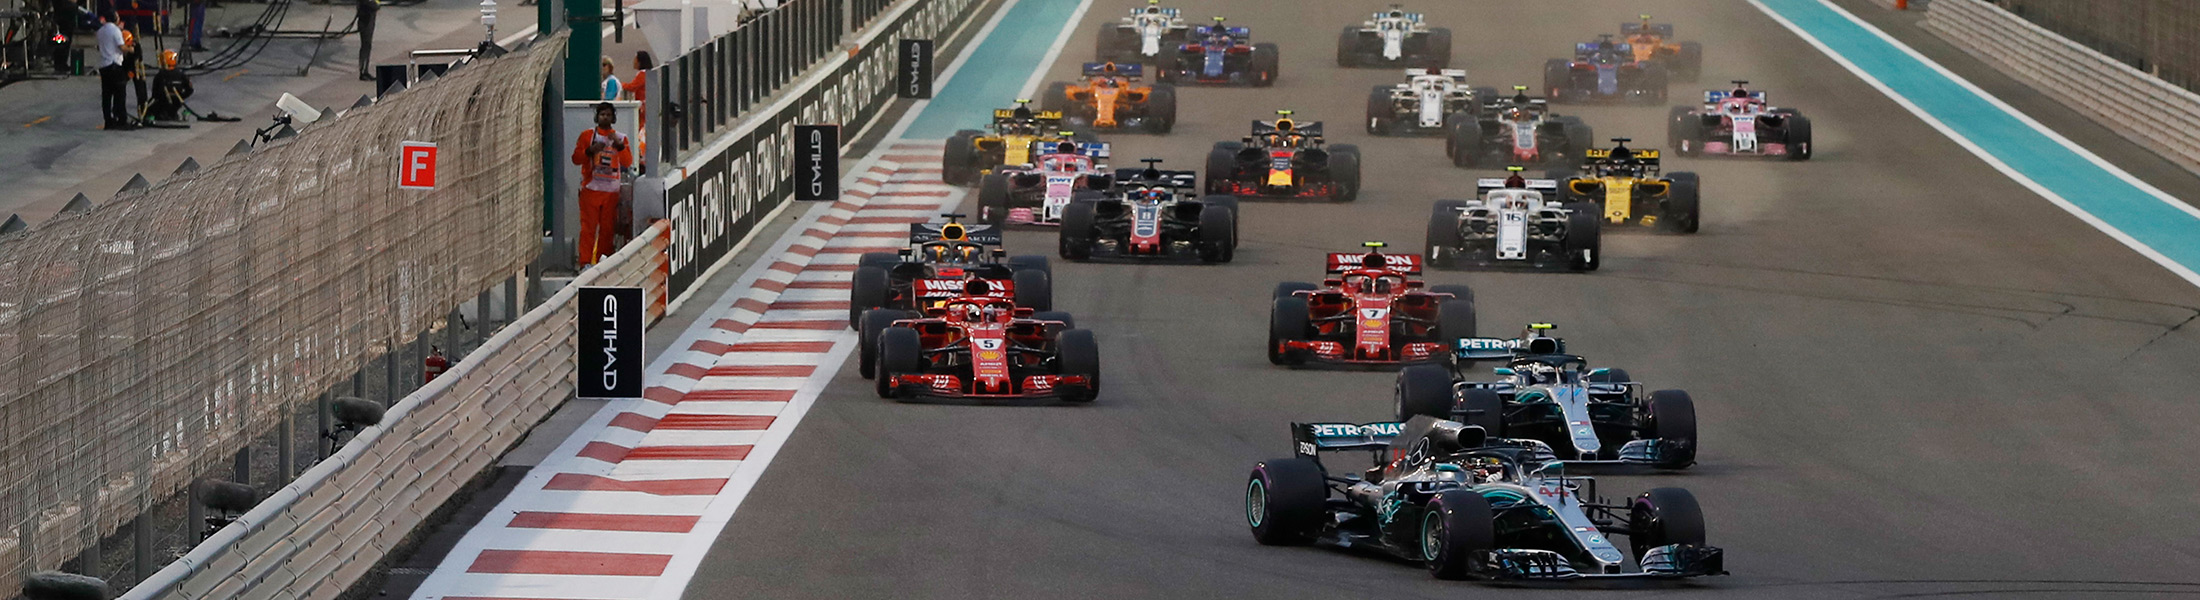 Formula 1 cars at the Abu Dhabi Grand Prix